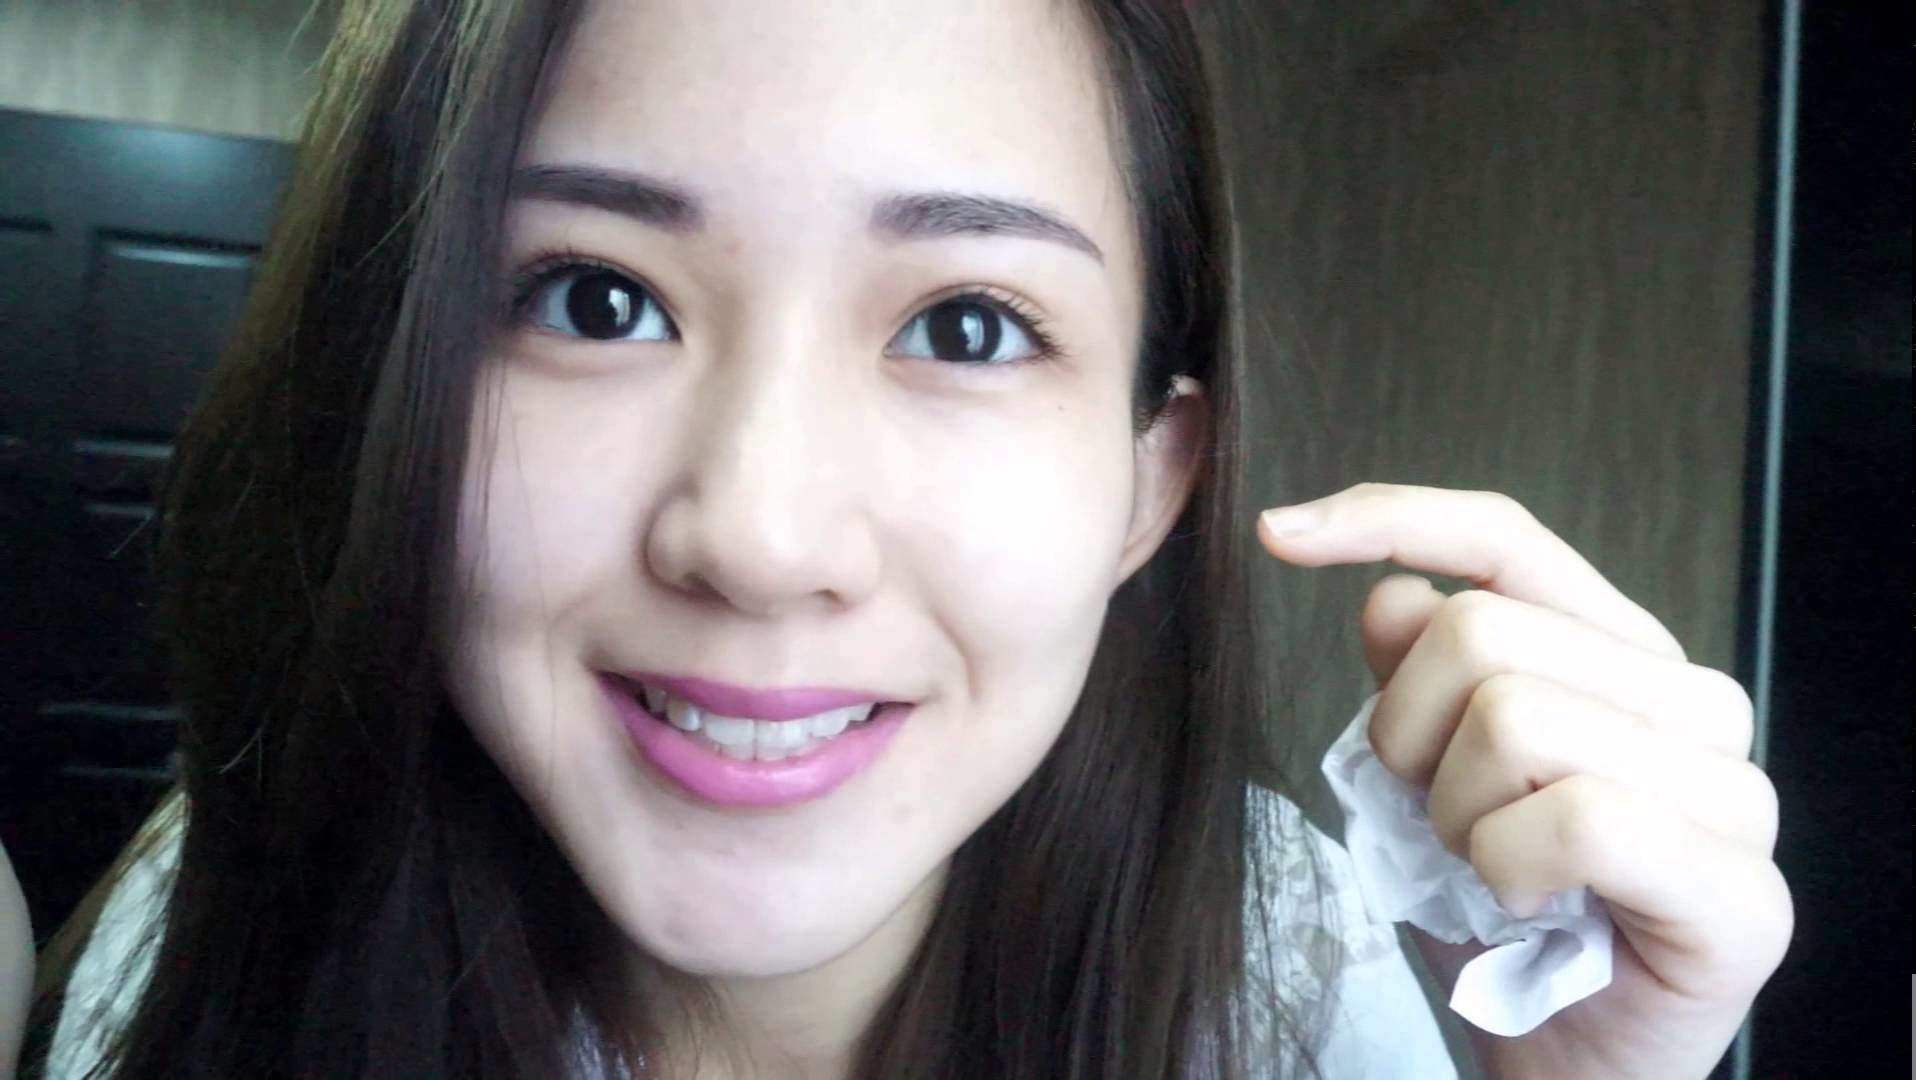 A double-eyelid is commonly believed to be a vital thing to looking beautiful as a Singaporean woman.